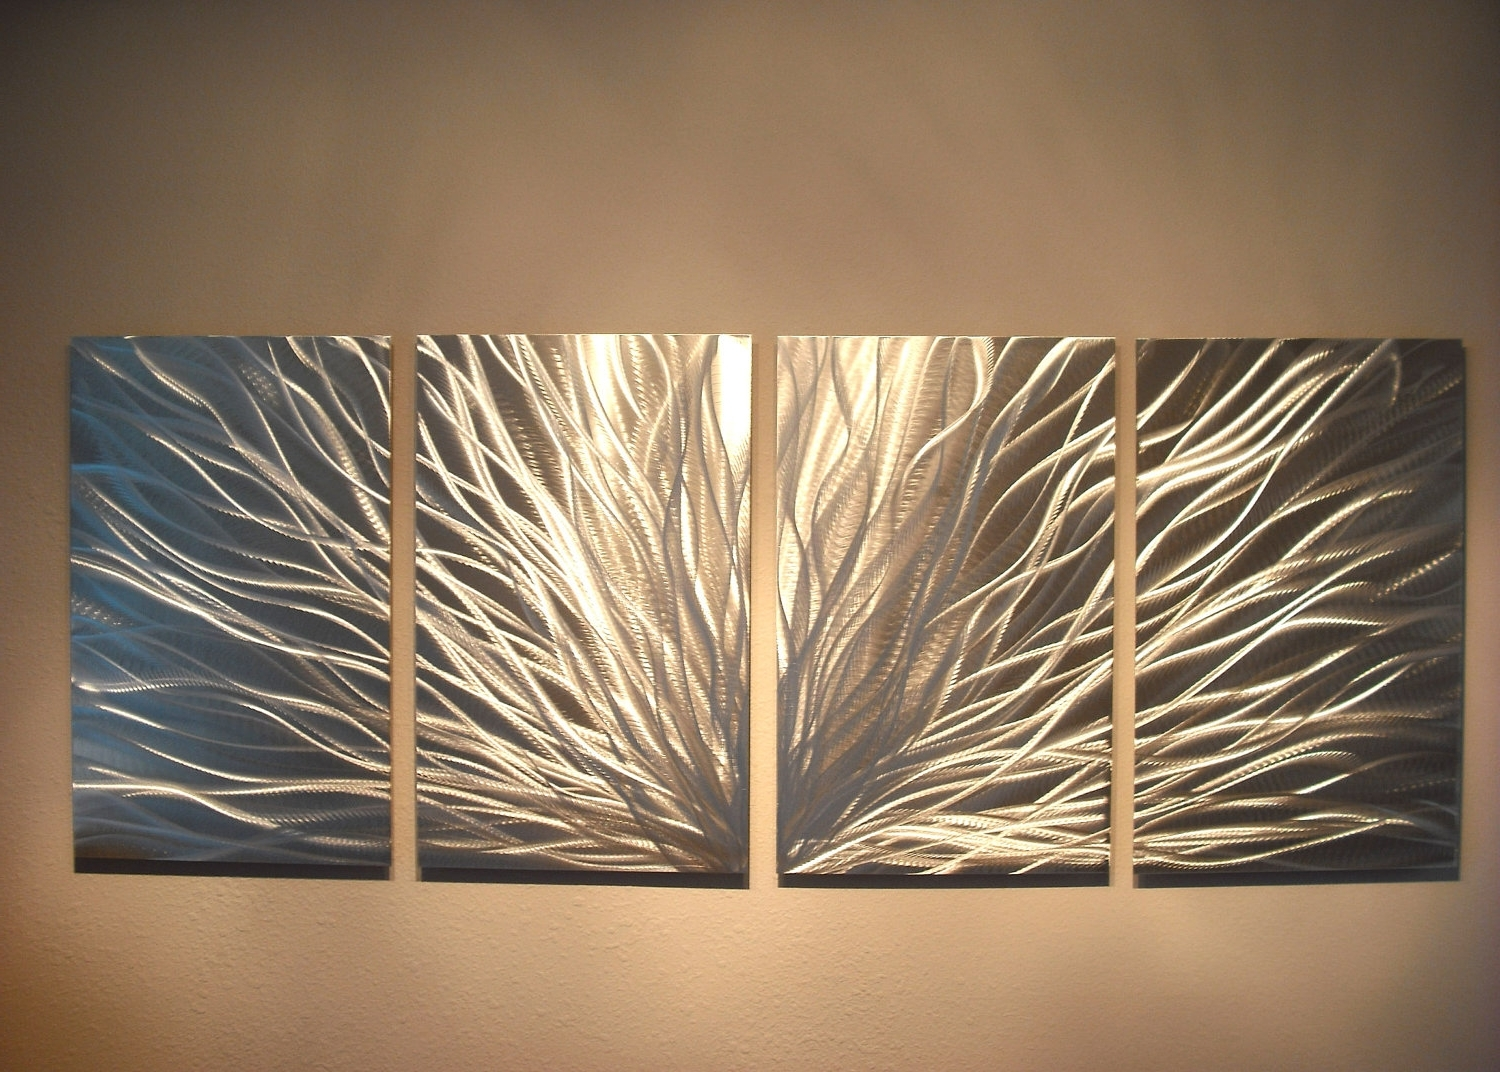 Newest Abstract Metal Wall Art Panels In Radiance – Abstract Metal Wall Art Contemporary Modern Decor (View 7 of 15)